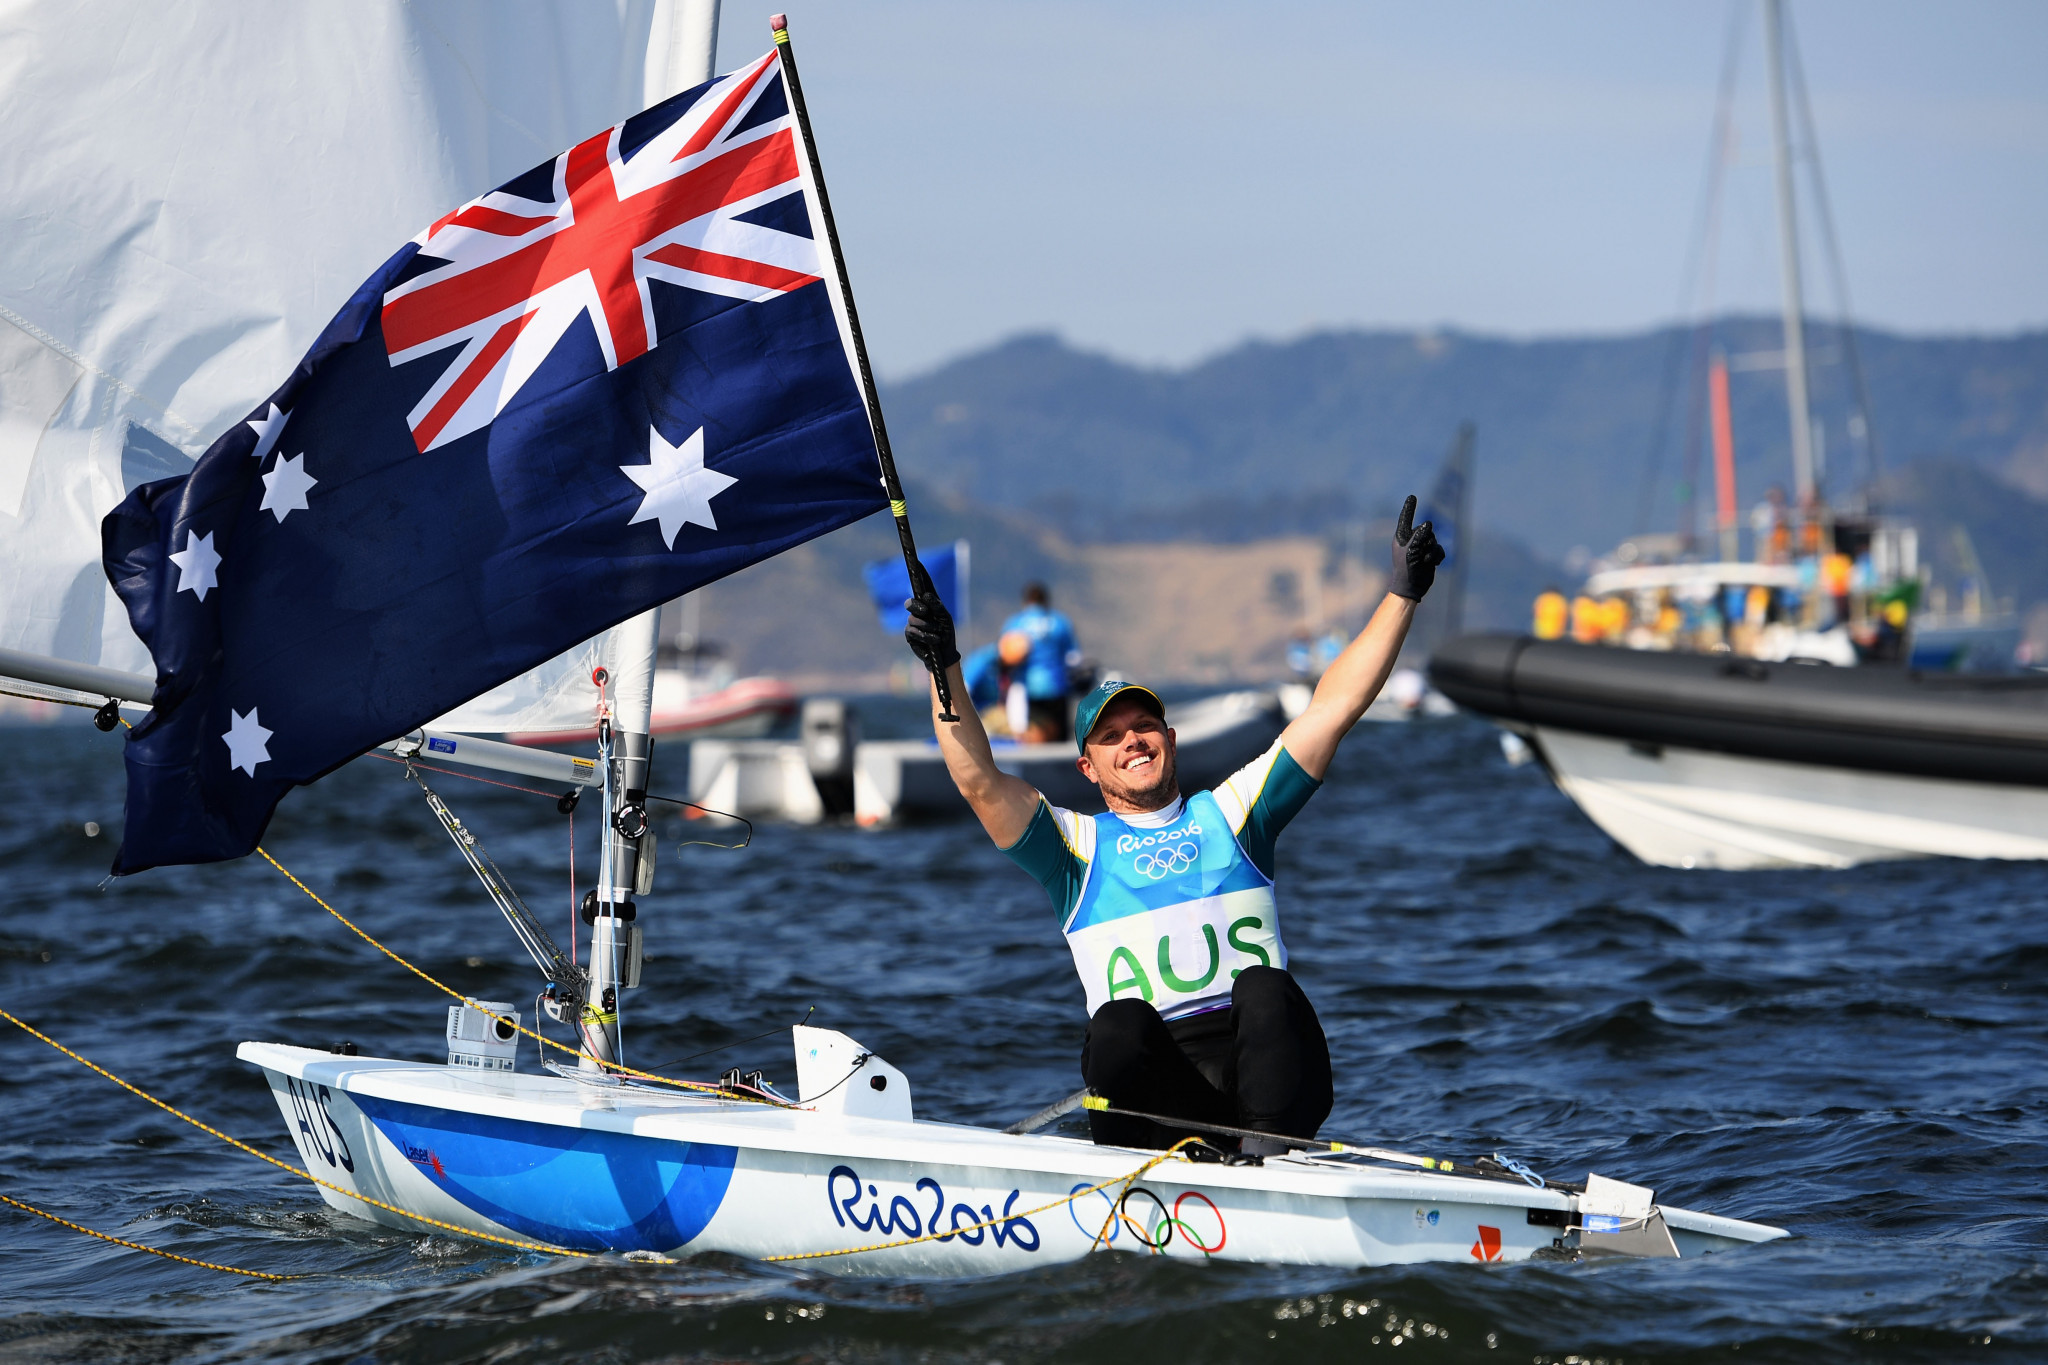 Laser world champion Tom Burton of Australia went from bronze at the Rio 2016 test event to gold at the Olympics ©Getty Images